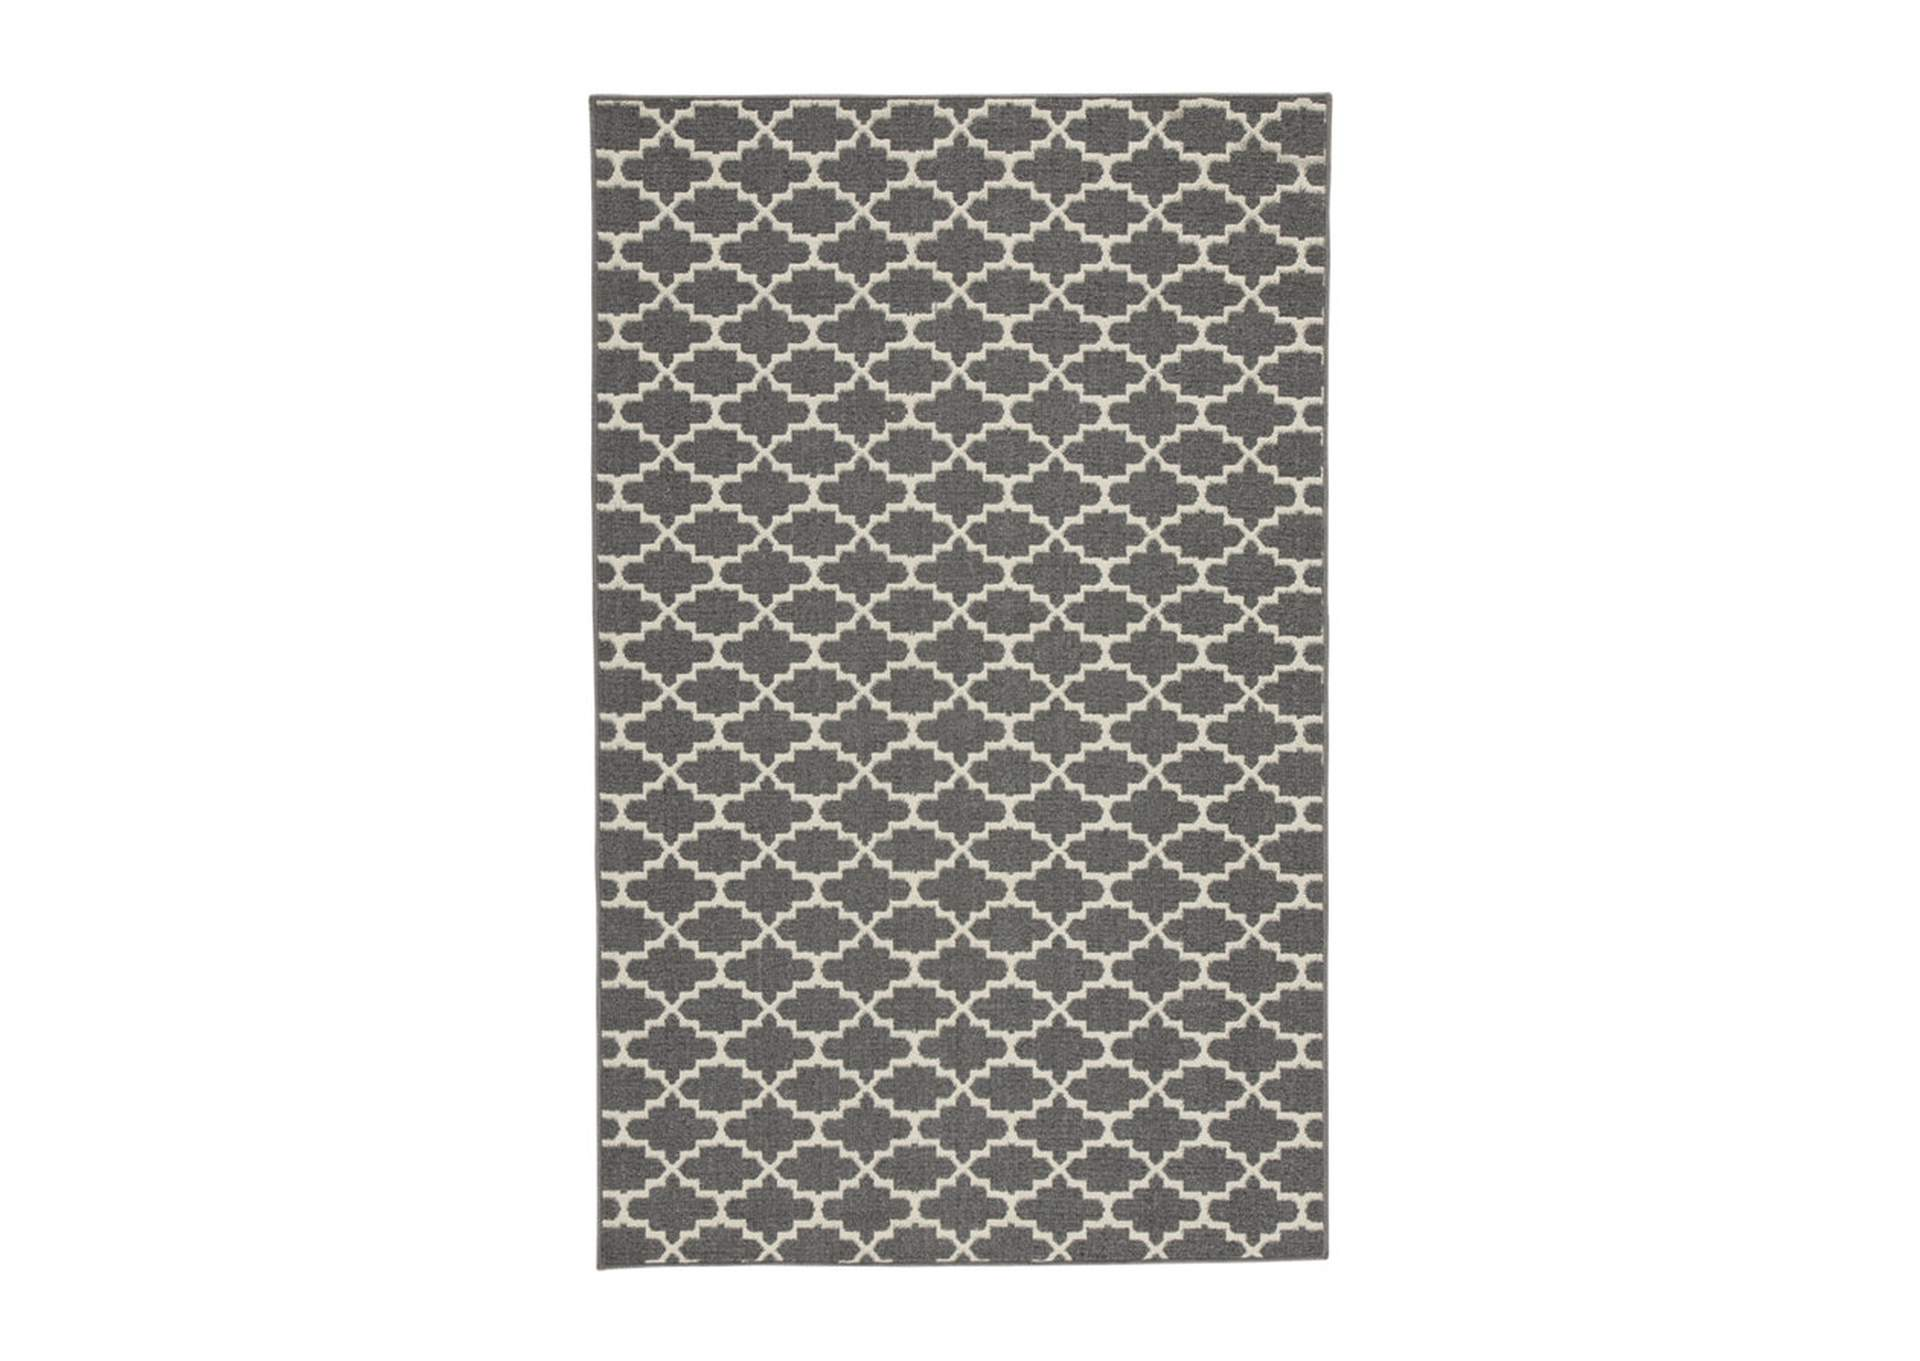 Nathanael Gray/Tan Large Rug,Direct To Consumer Express